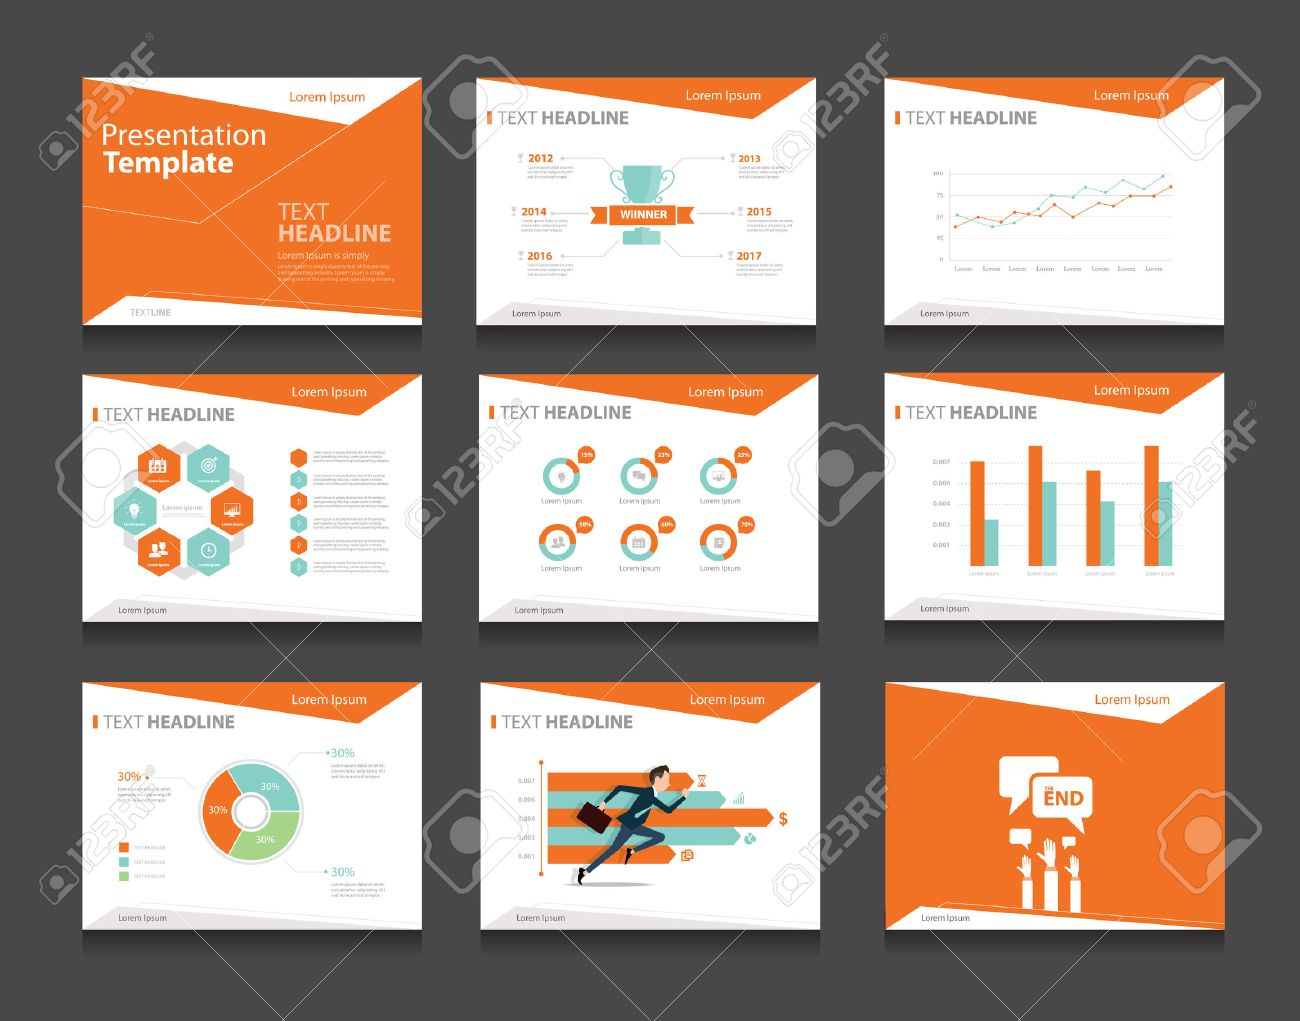 Orange infographic business presentation template setpowerpoint orange infographic business presentation template setpowerpoint template design backgrounds stock vector 43682943 toneelgroepblik Gallery